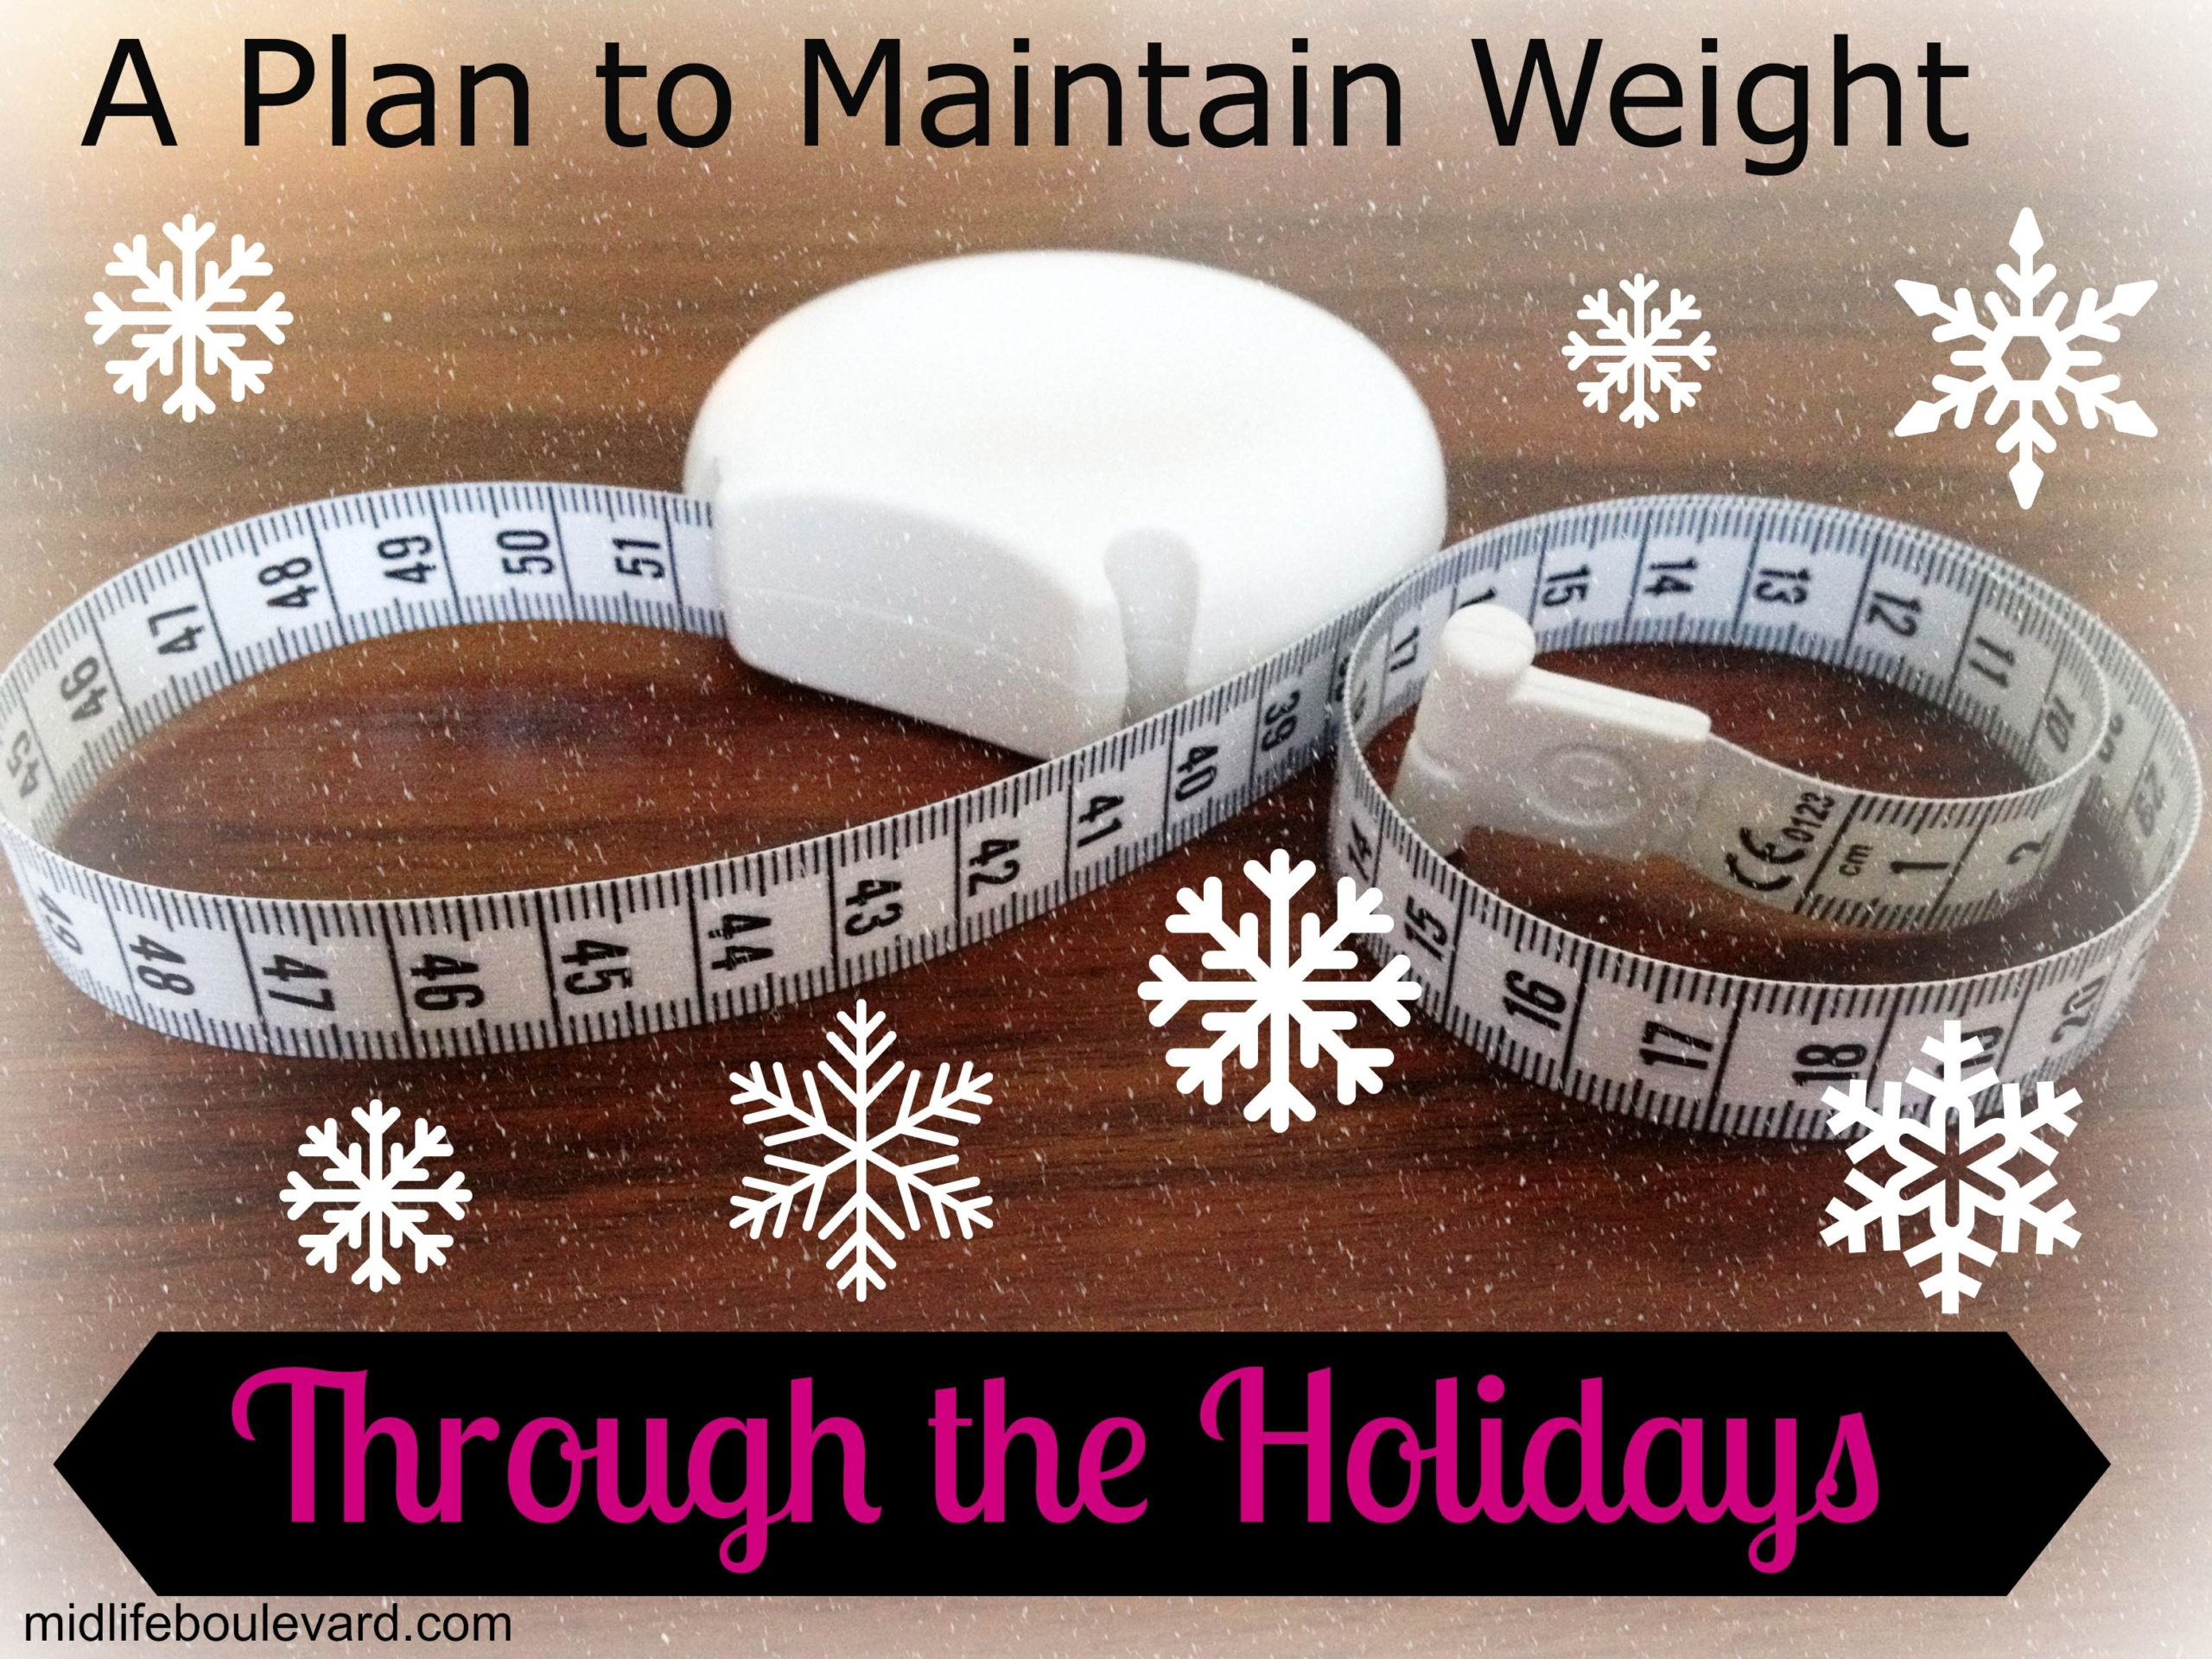 How To Stay Fit Through The Holidays!